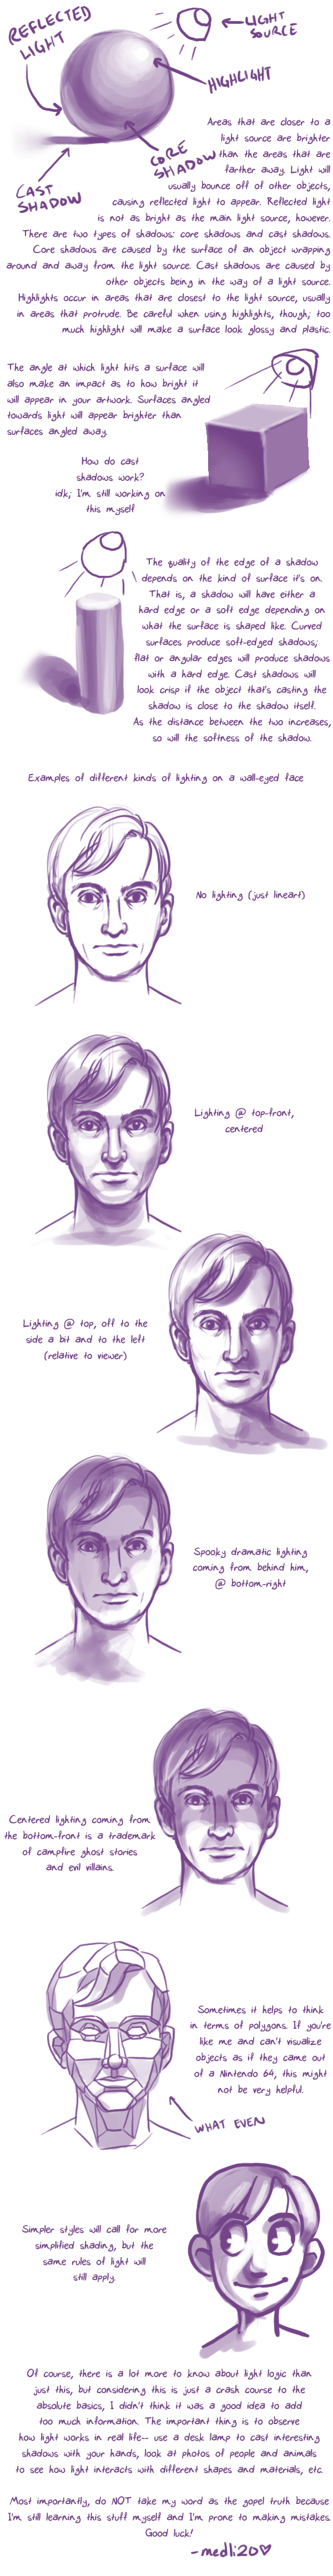 Notes on lighting and shading by medli20